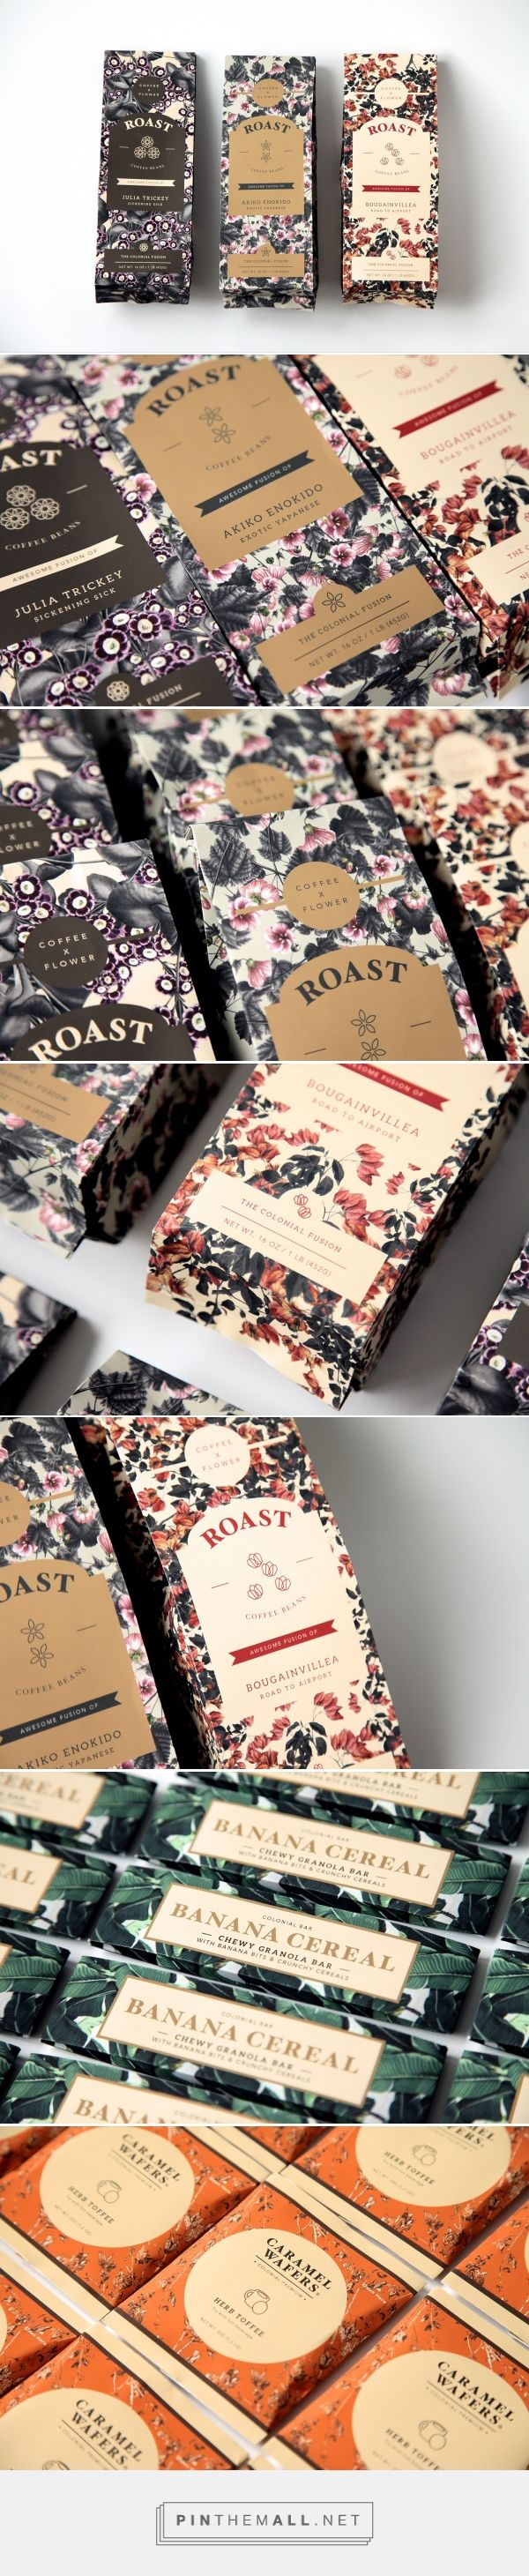 Come Fly Away With me Brand Coffee and Snack Packaging by Warren Tey | Fivestar Branding Agency – Design and Branding Agency & Inspiration Gallery